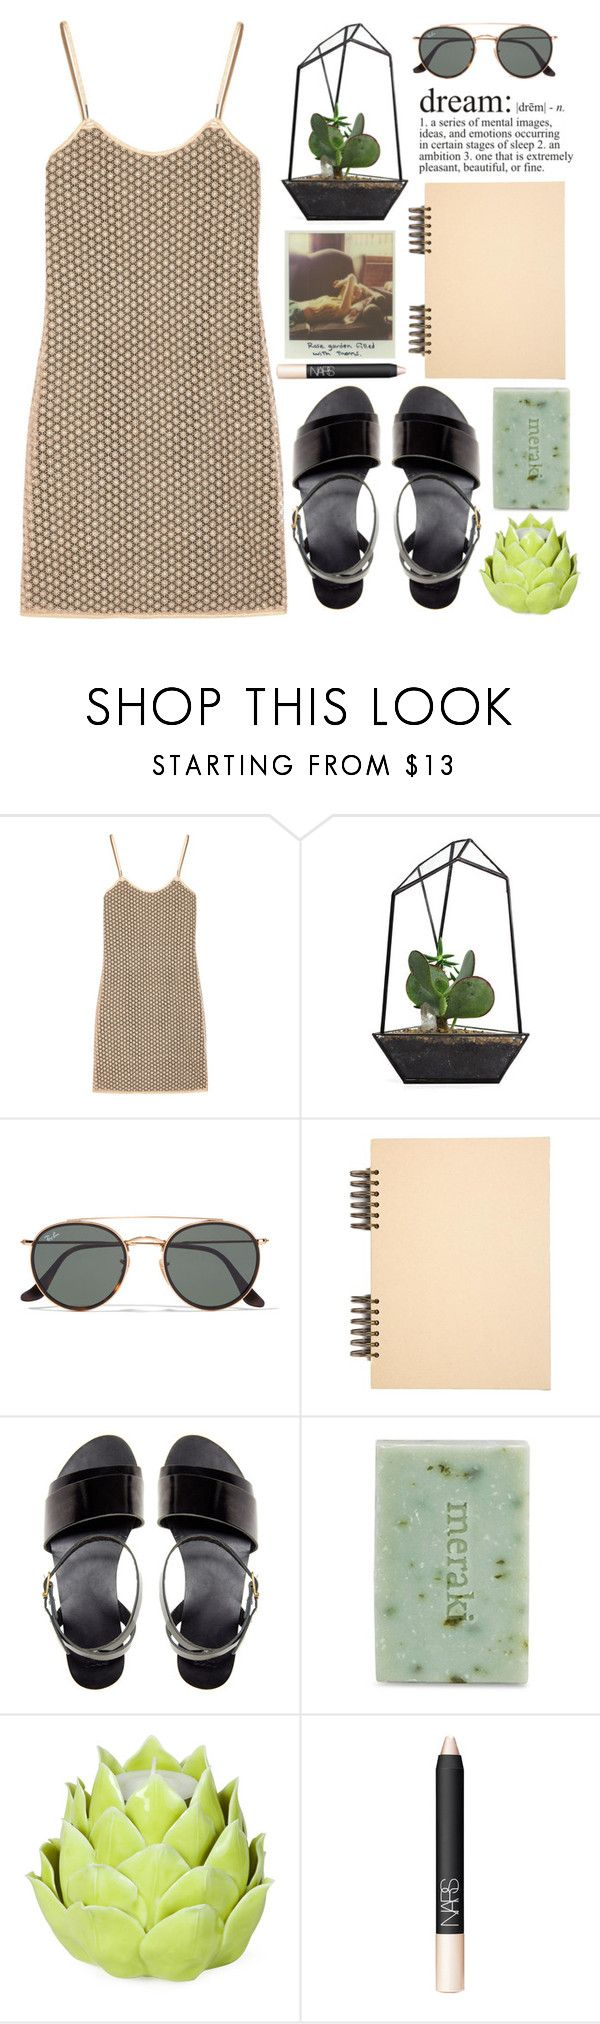 """""""Wunderkind"""" by miss-magali-mnms ❤ liked on Polyvore featuring Diane Von Furstenberg, Ray-Ban, ASOS, Meraki, Zara Home and NARS Cosmetics"""